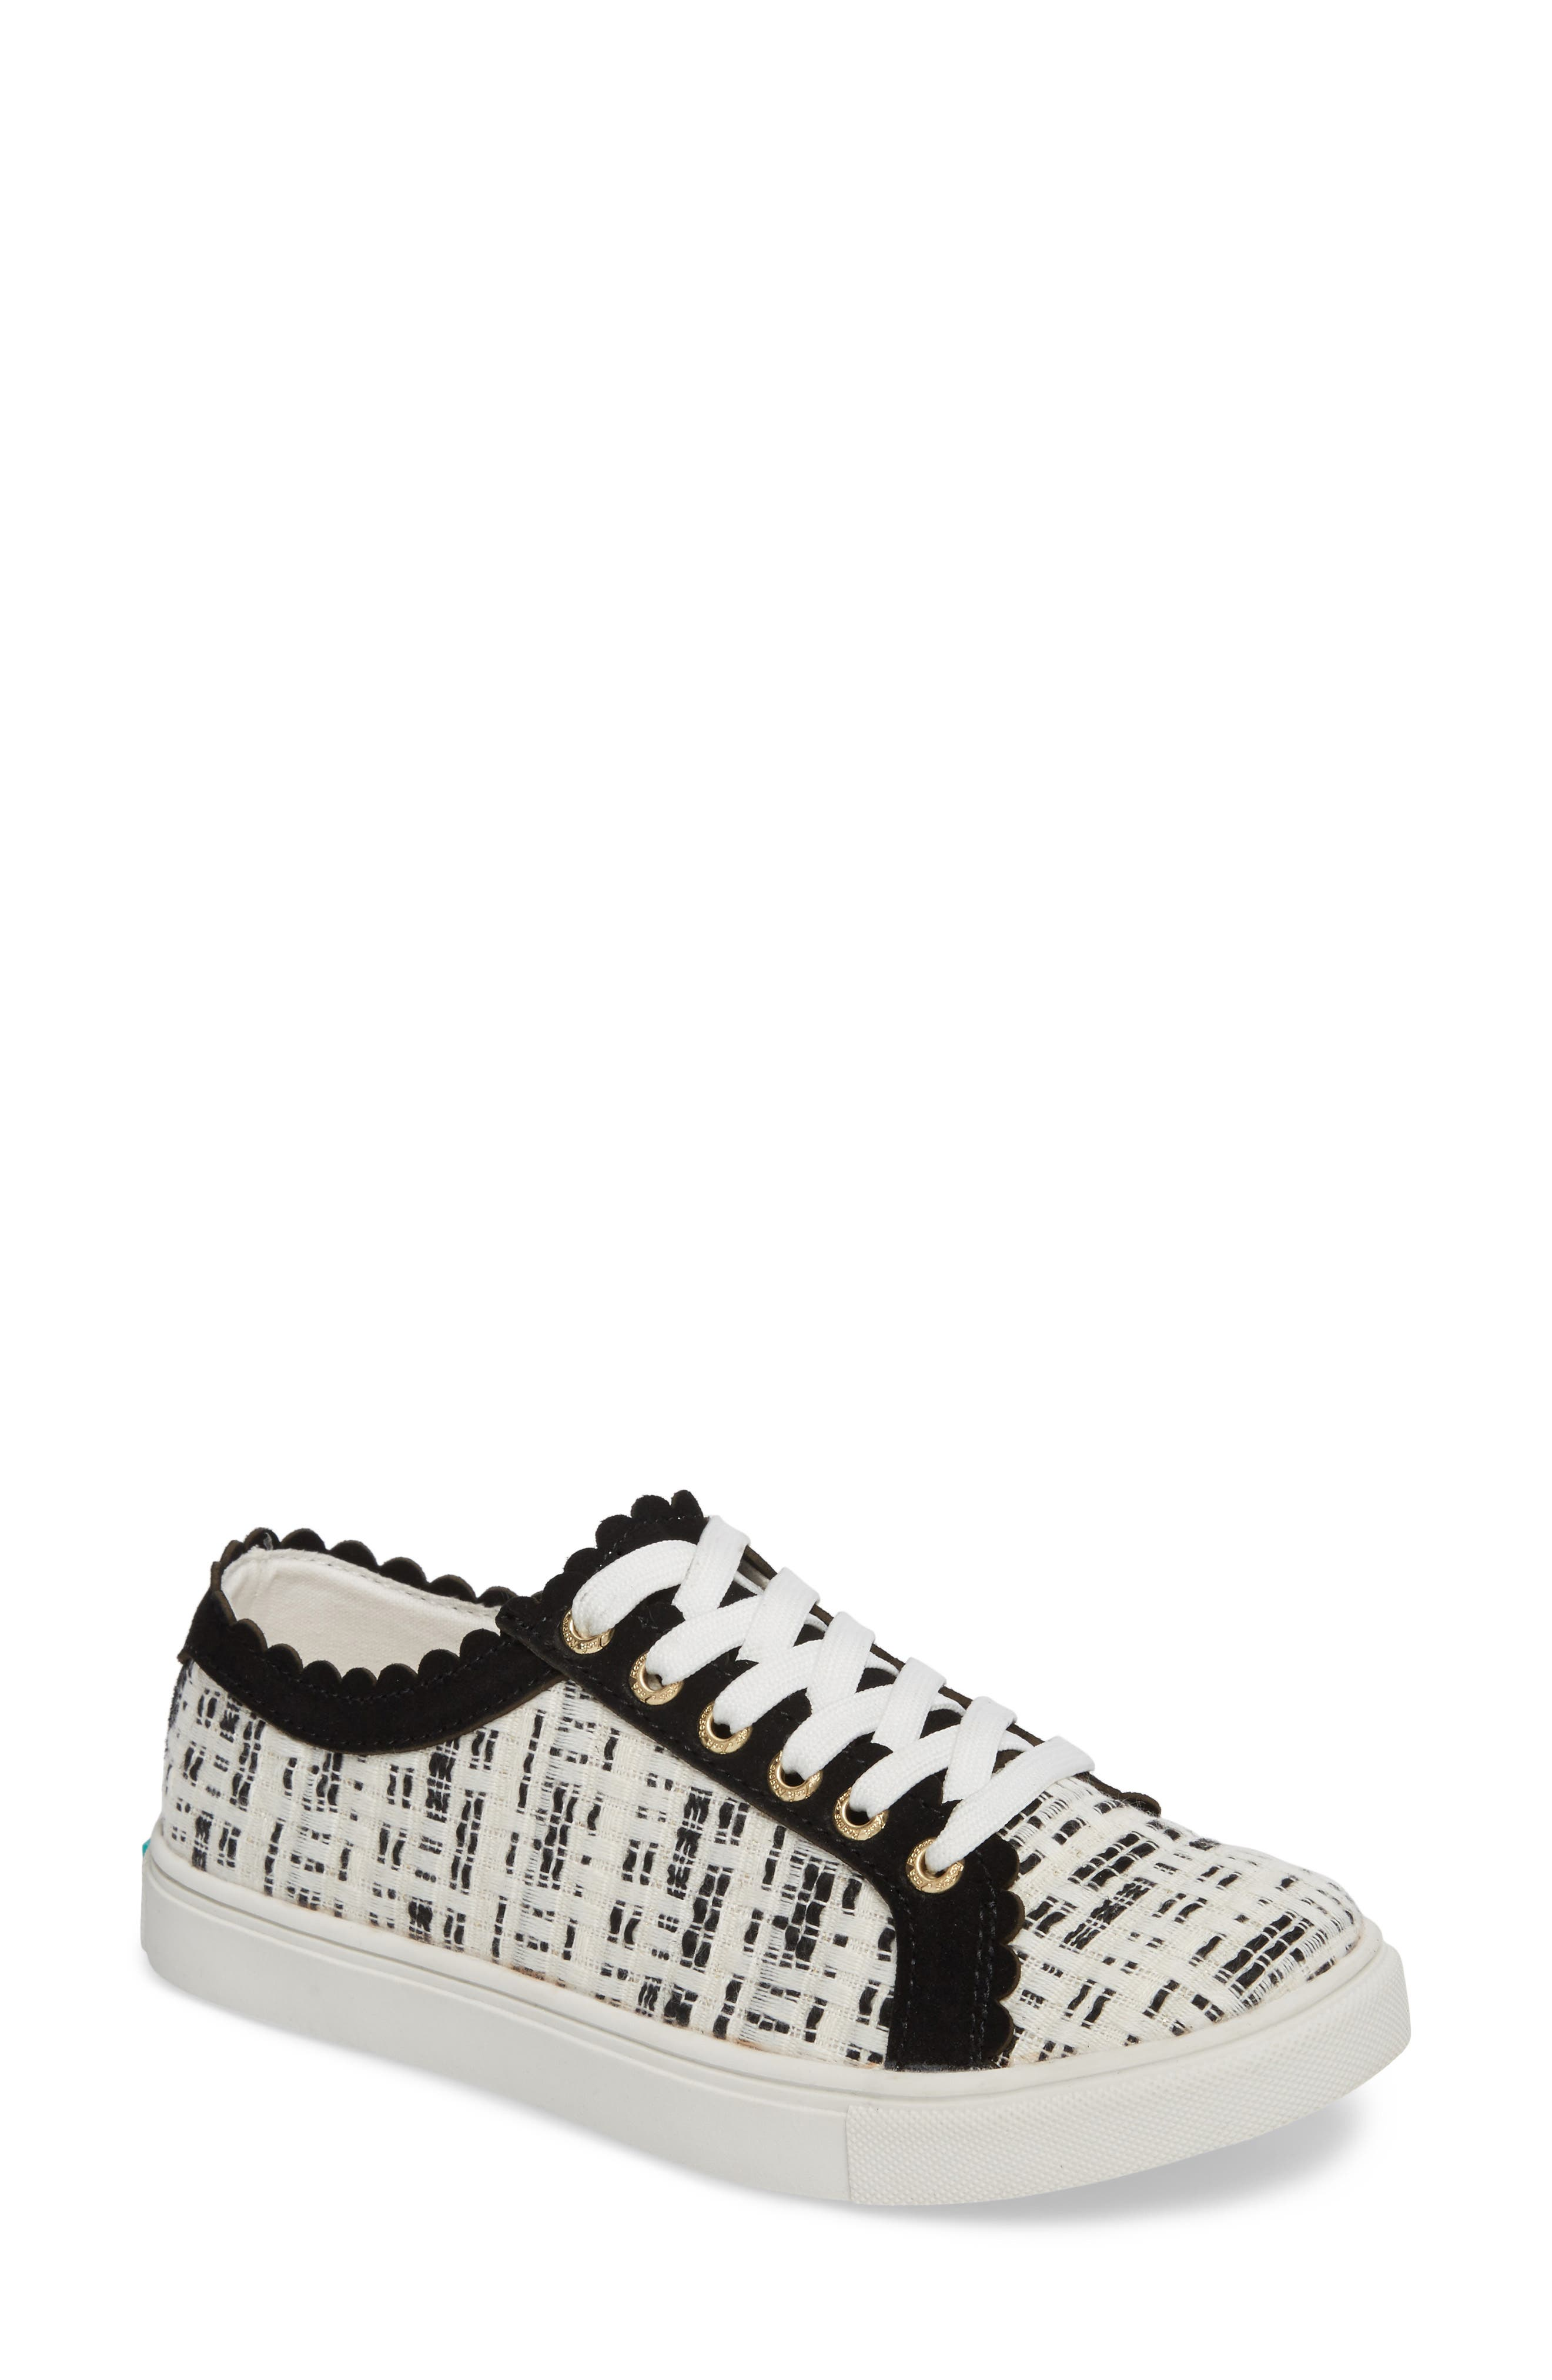 Jack Rogers Women's Scalloped Suede & Tweed Low Top Lace Up Sneakers vW1cPR0